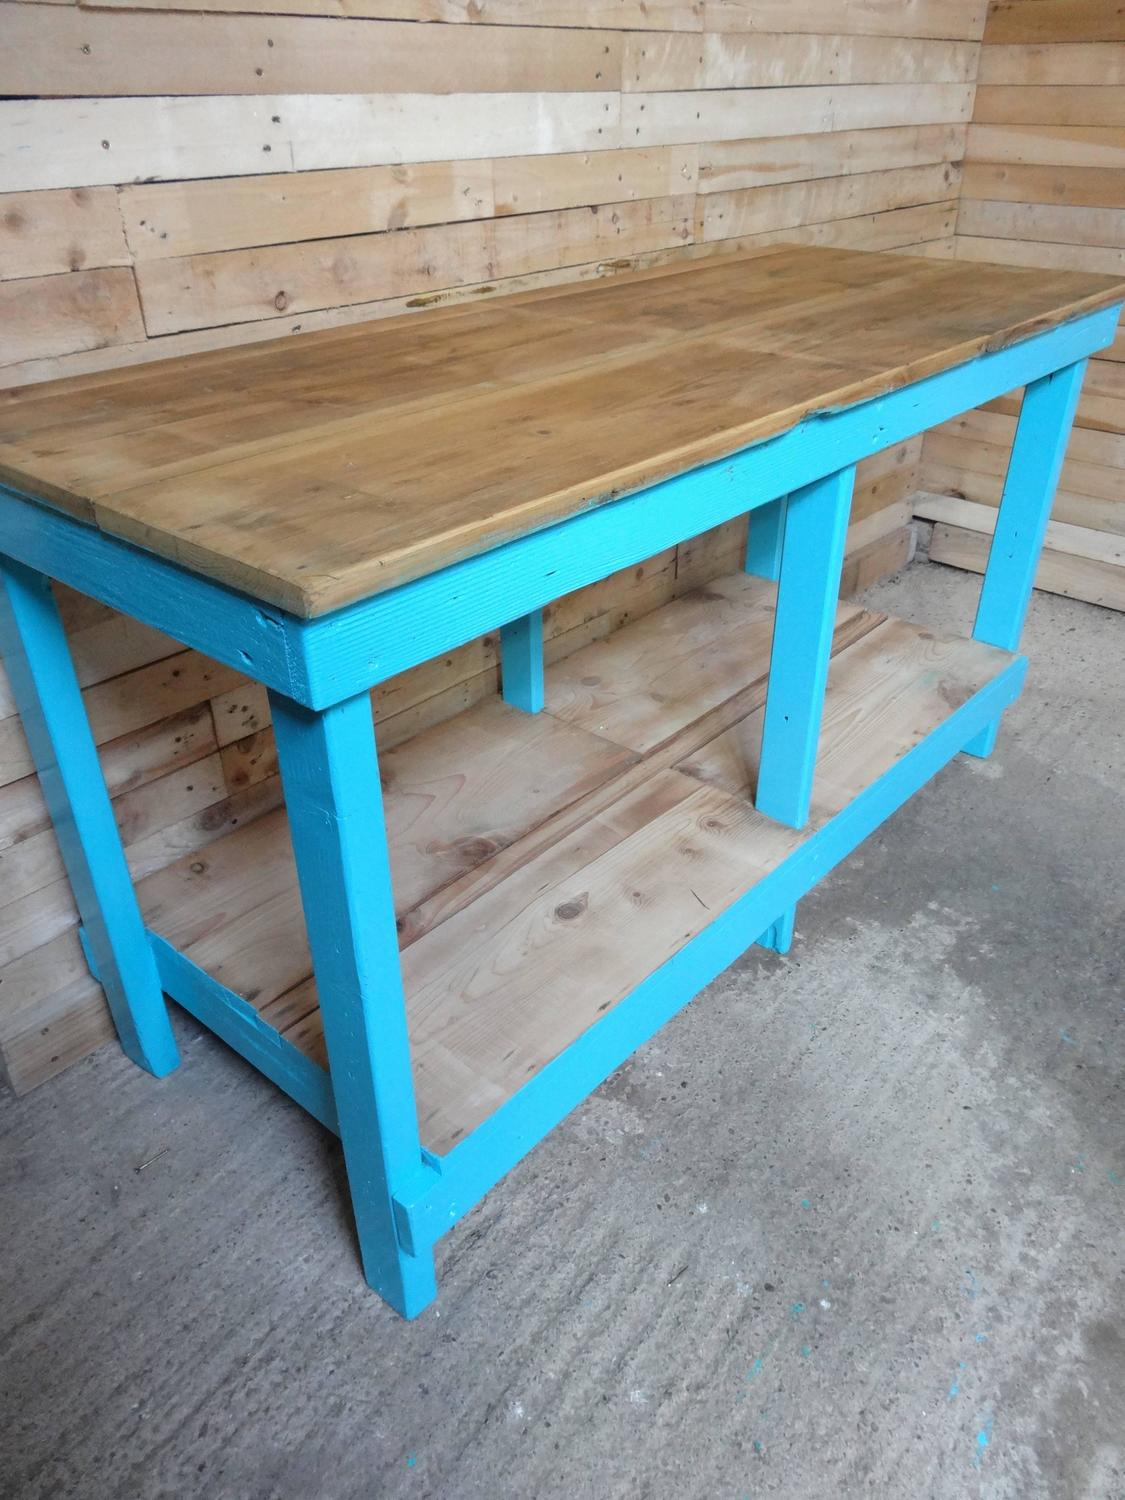 1910s industrial sewing table or large kitchen table for